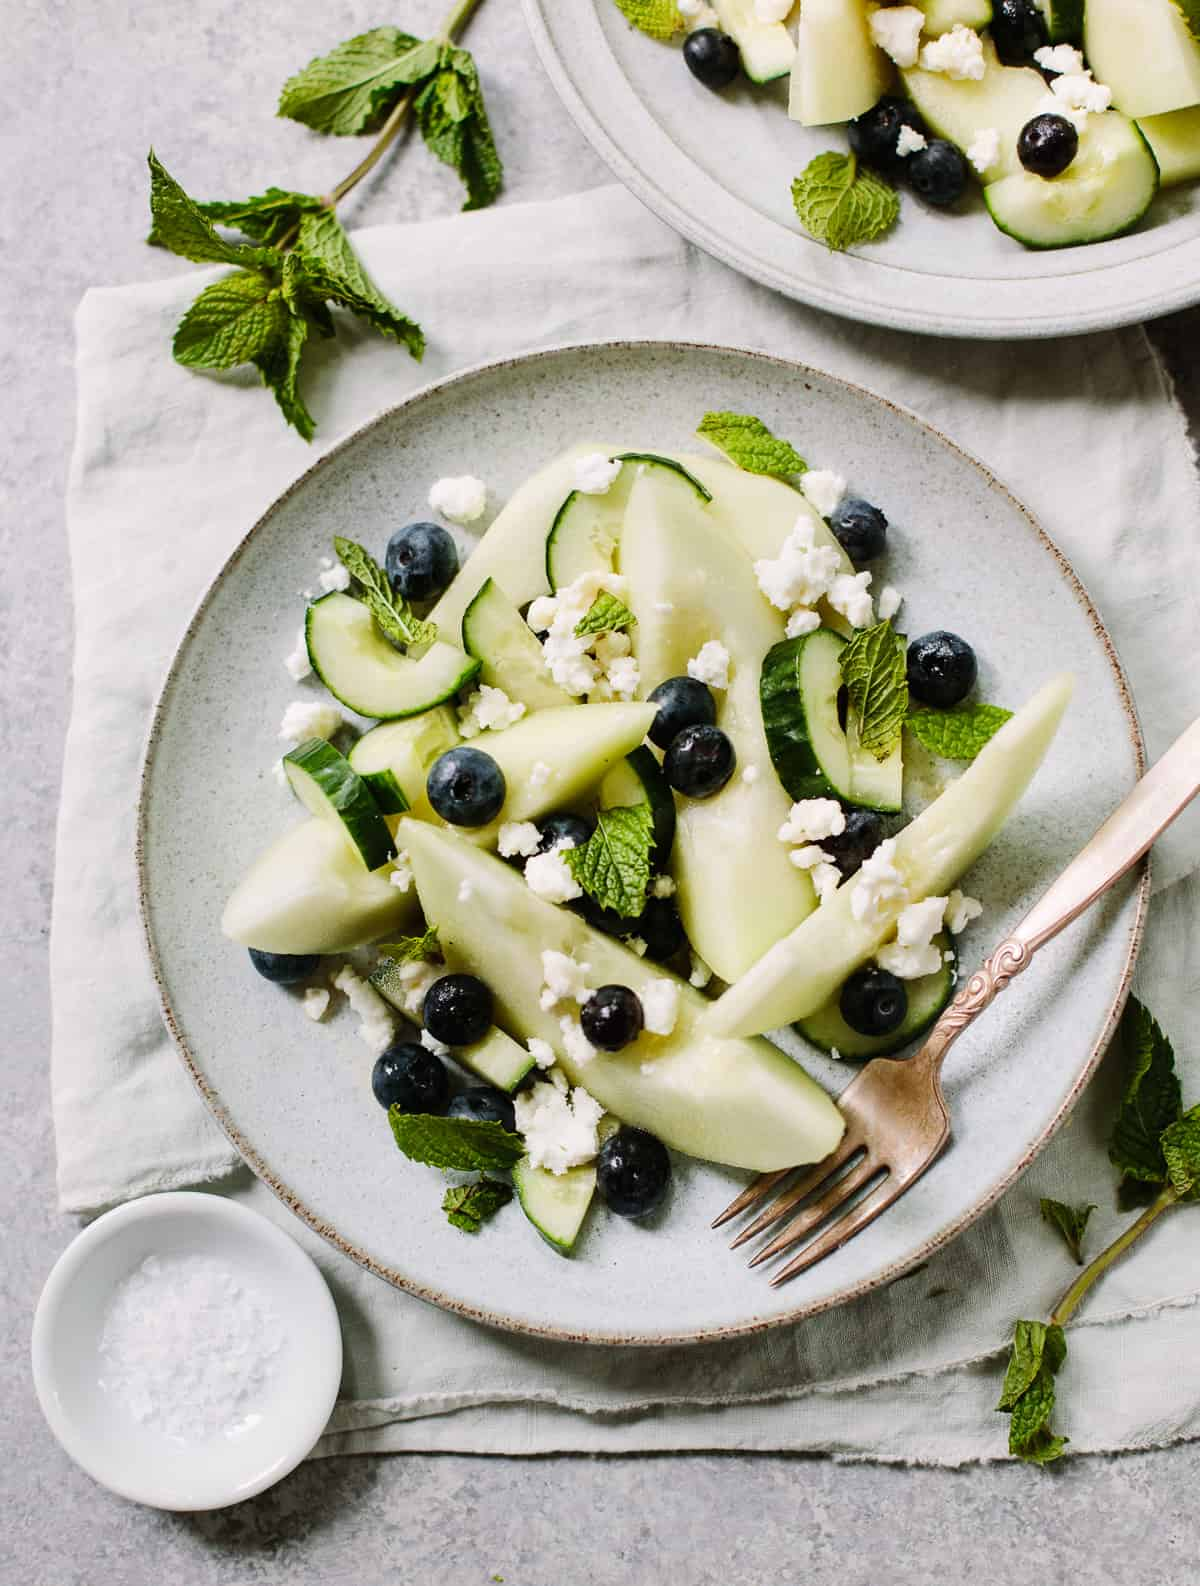 Cool Honeydew Salad with Cucumber, Blueberries and Feta